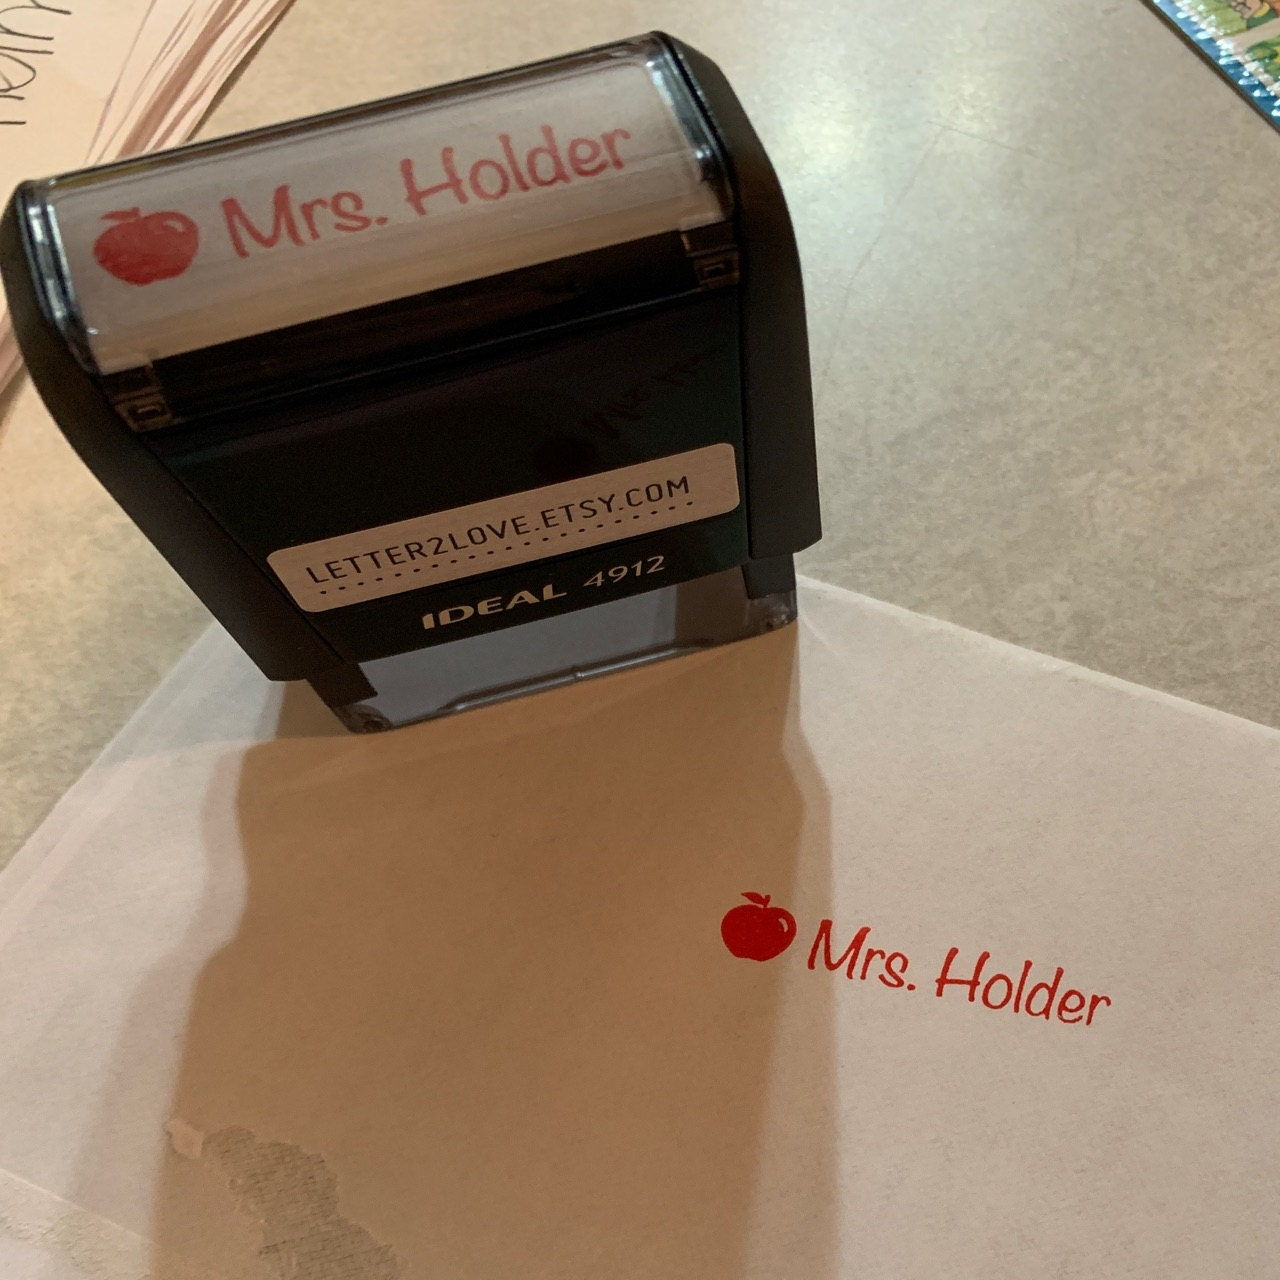 Jennifer Holder added a photo of their purchase